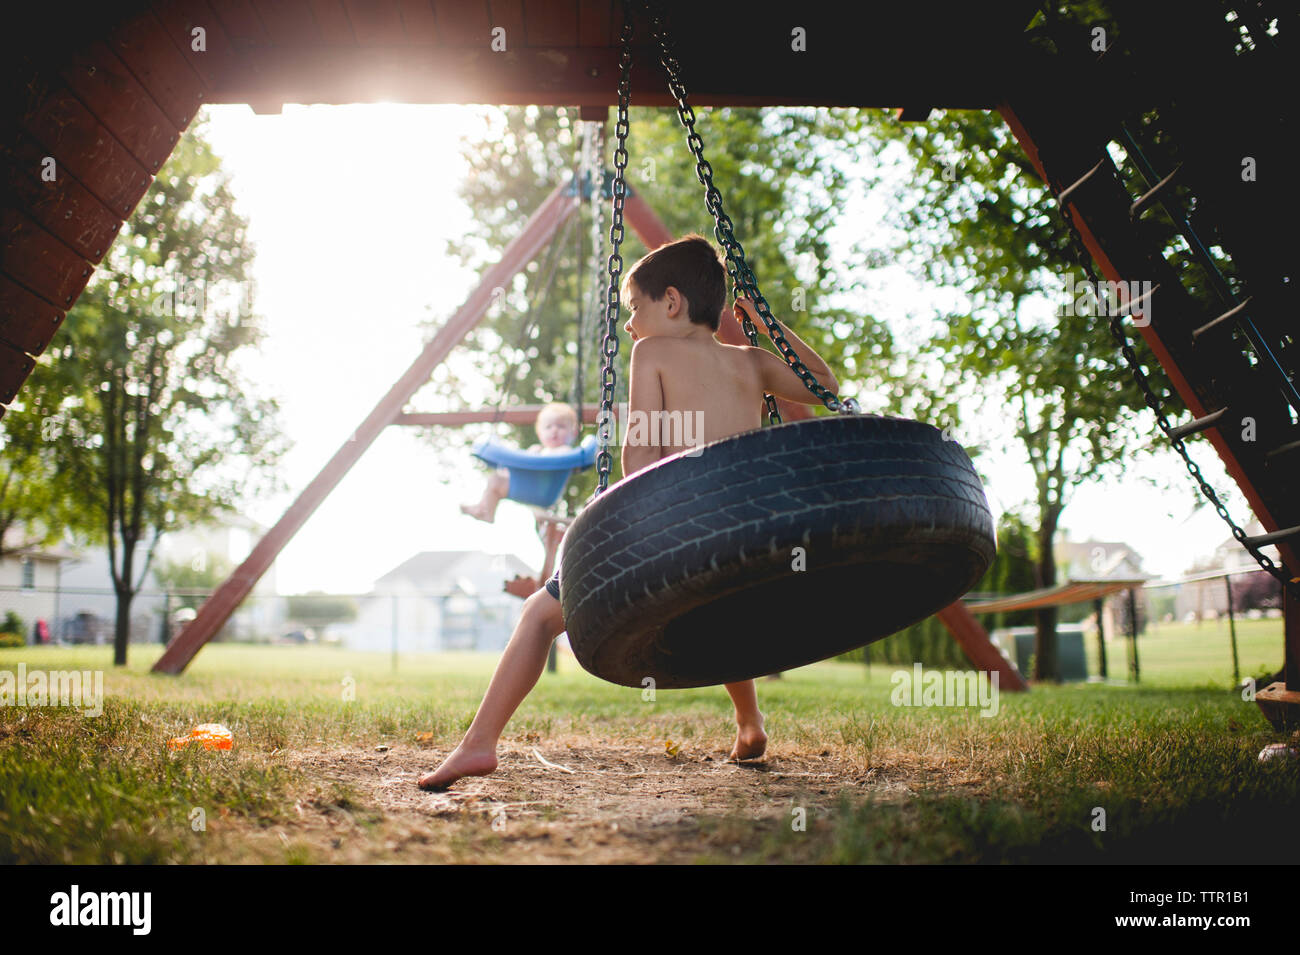 Brothers swinging at playground - Stock Image